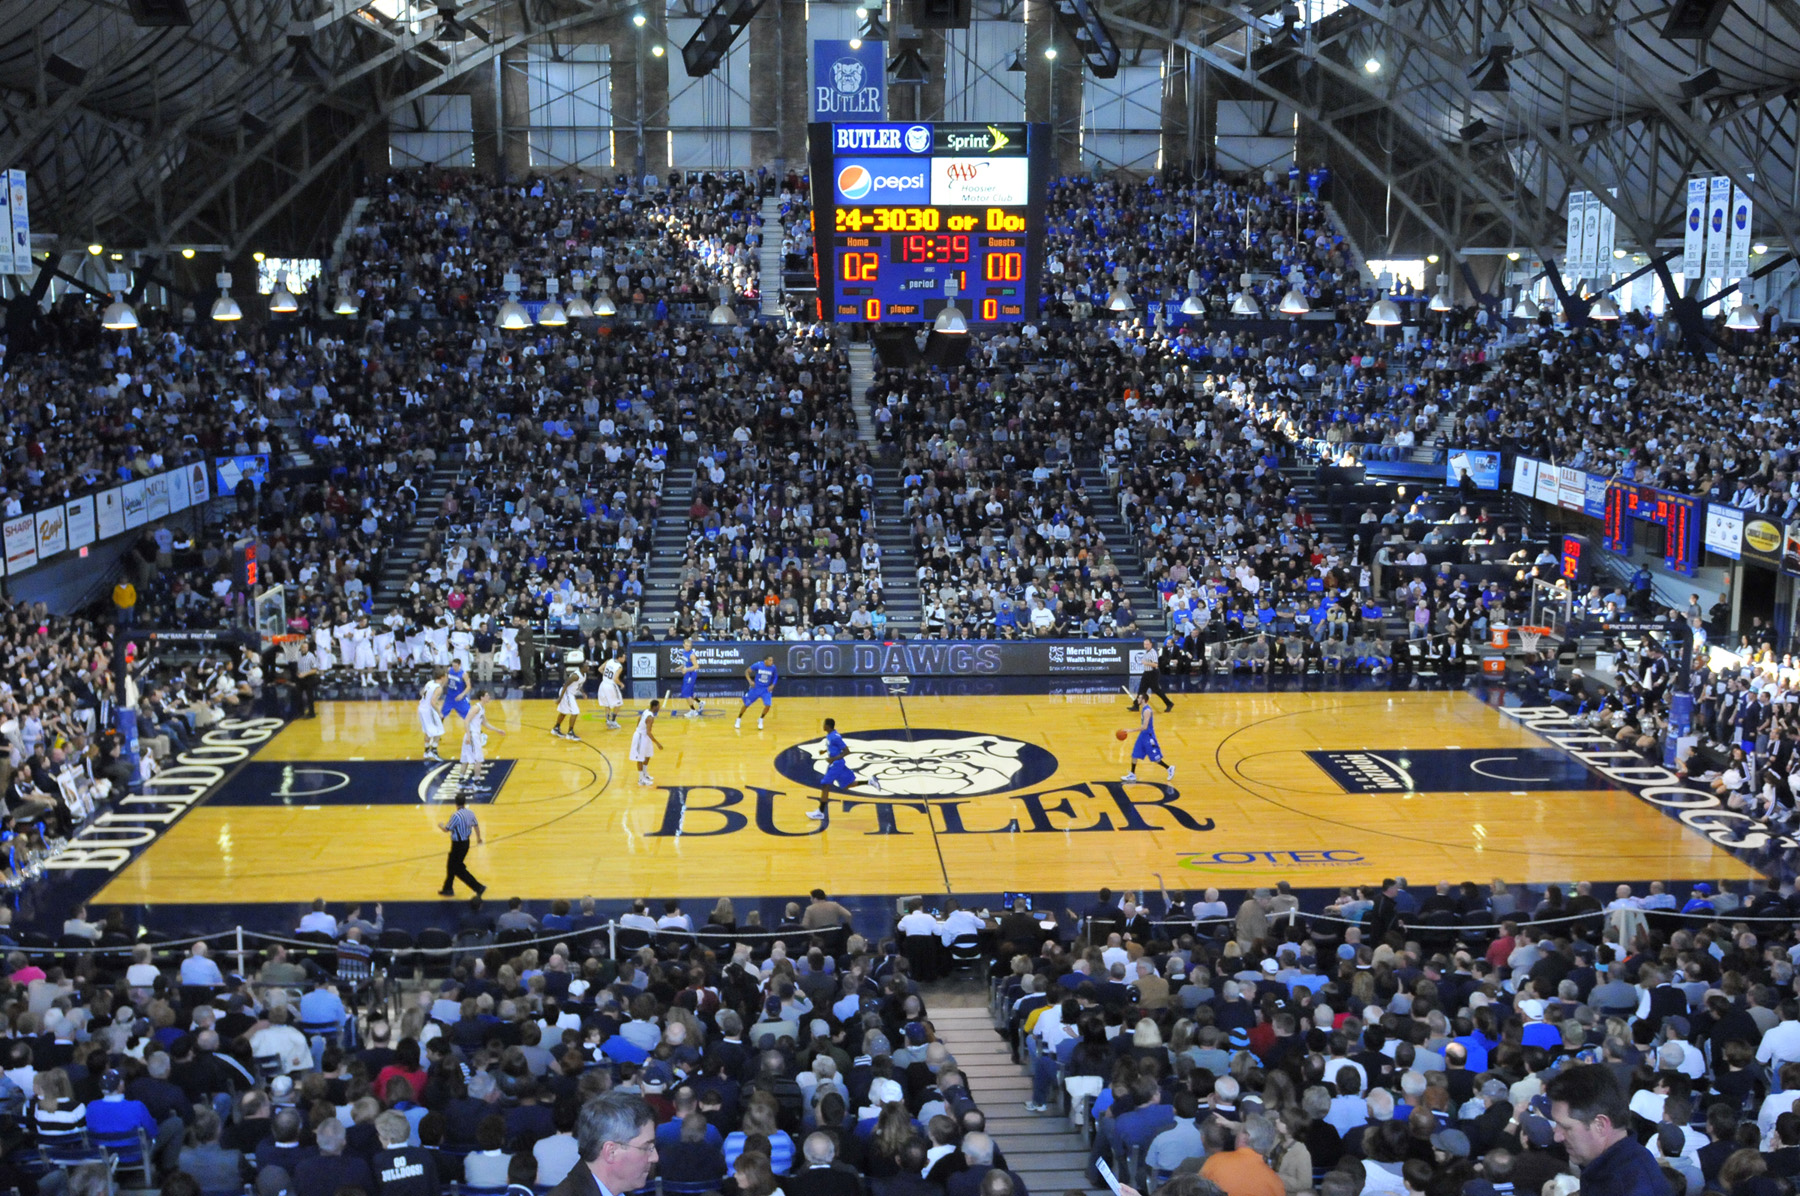 Butler to join Atlantic 10 Conference immediately | Pickin ...